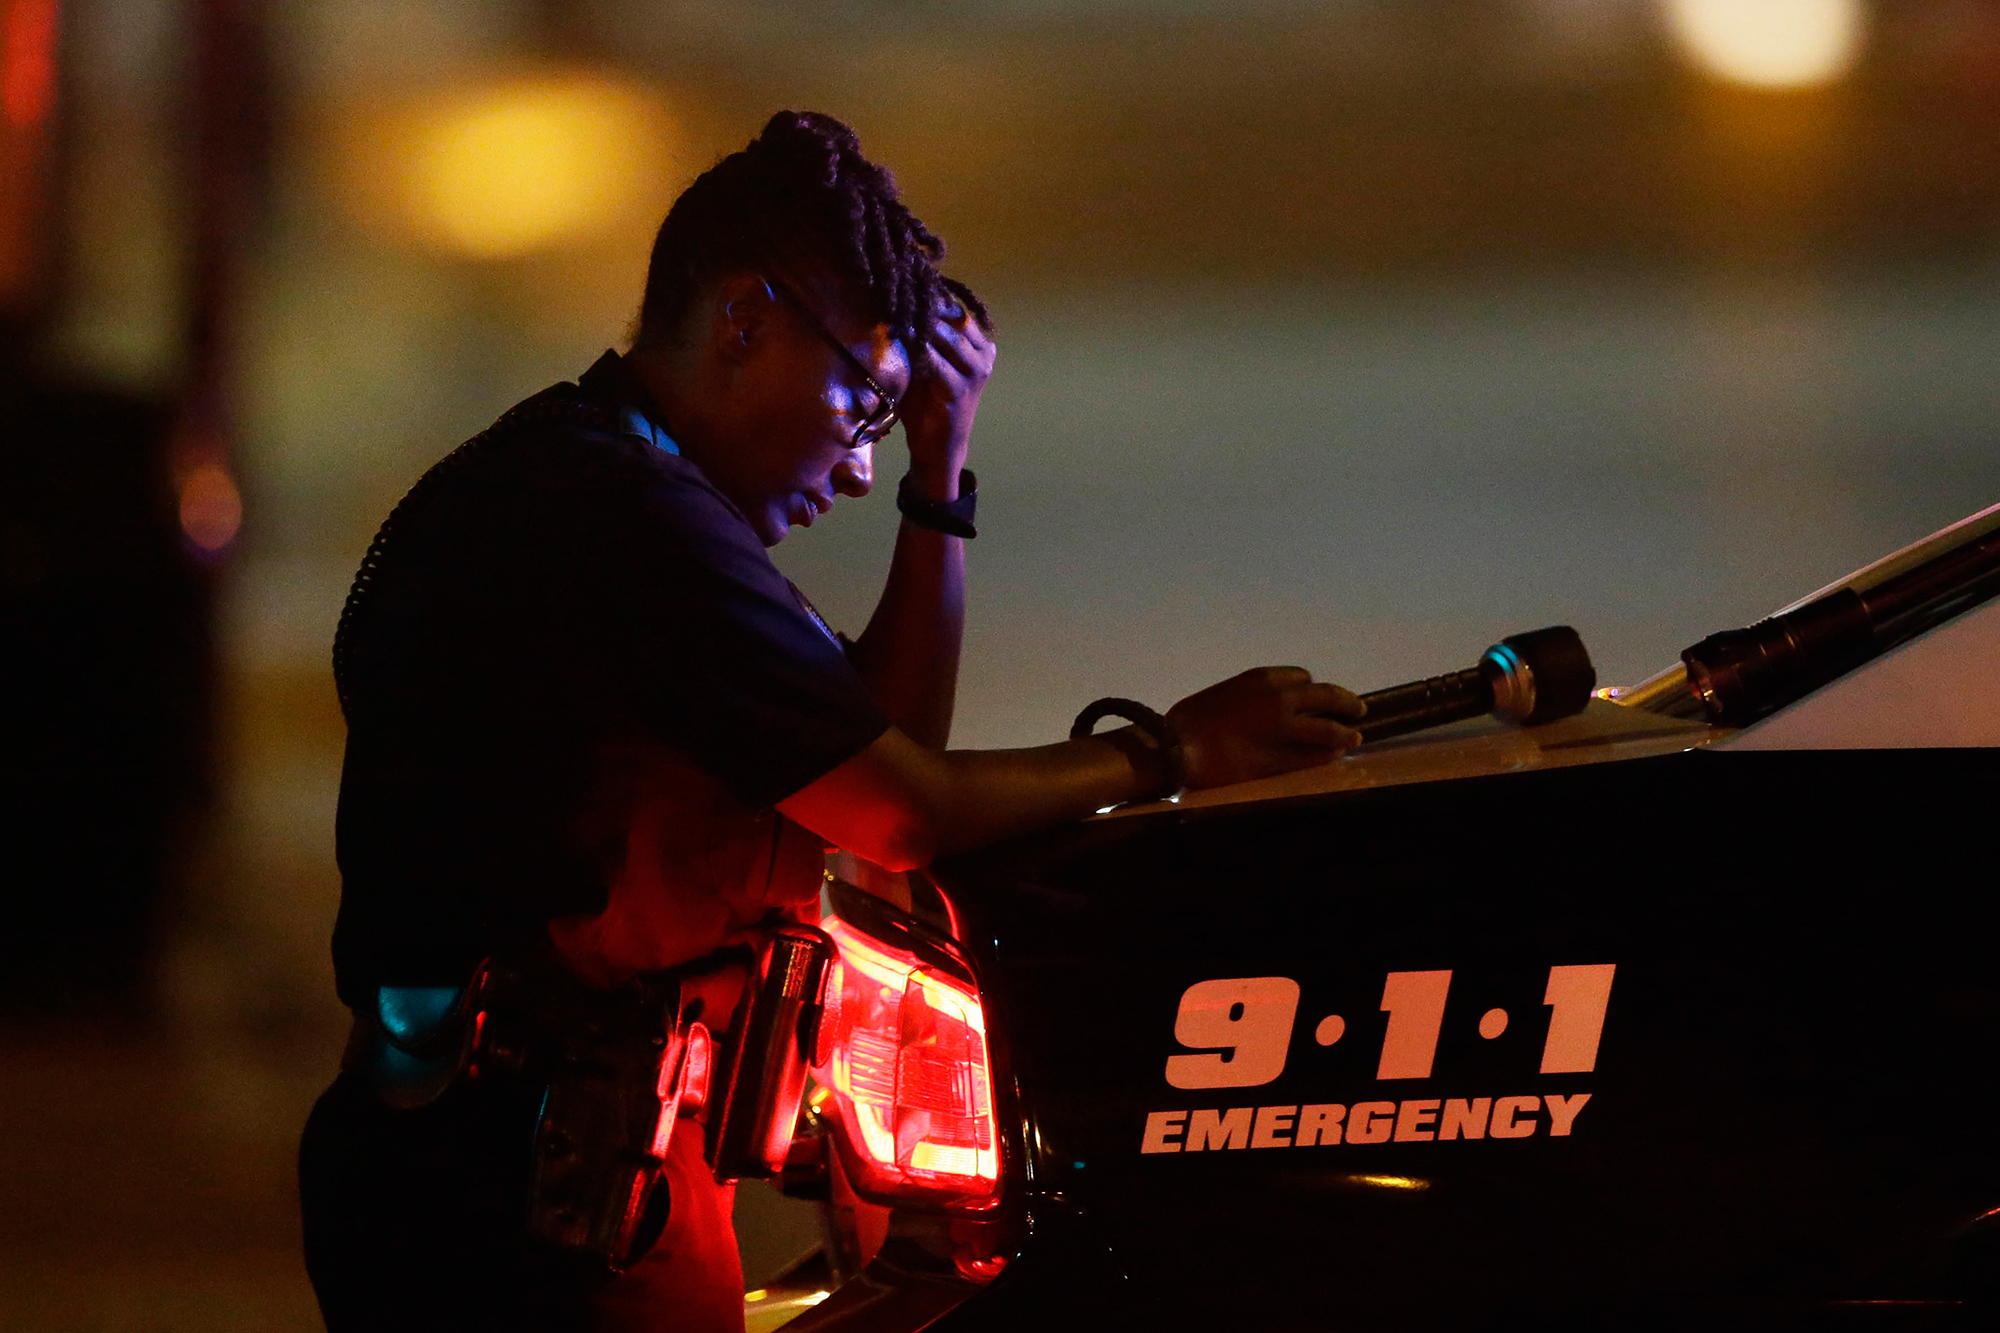 A Dallas police officer pauses for a moment in the early morning after a sniper shooting, which left five police officers dead, in Dallas, on July 8, 2016.